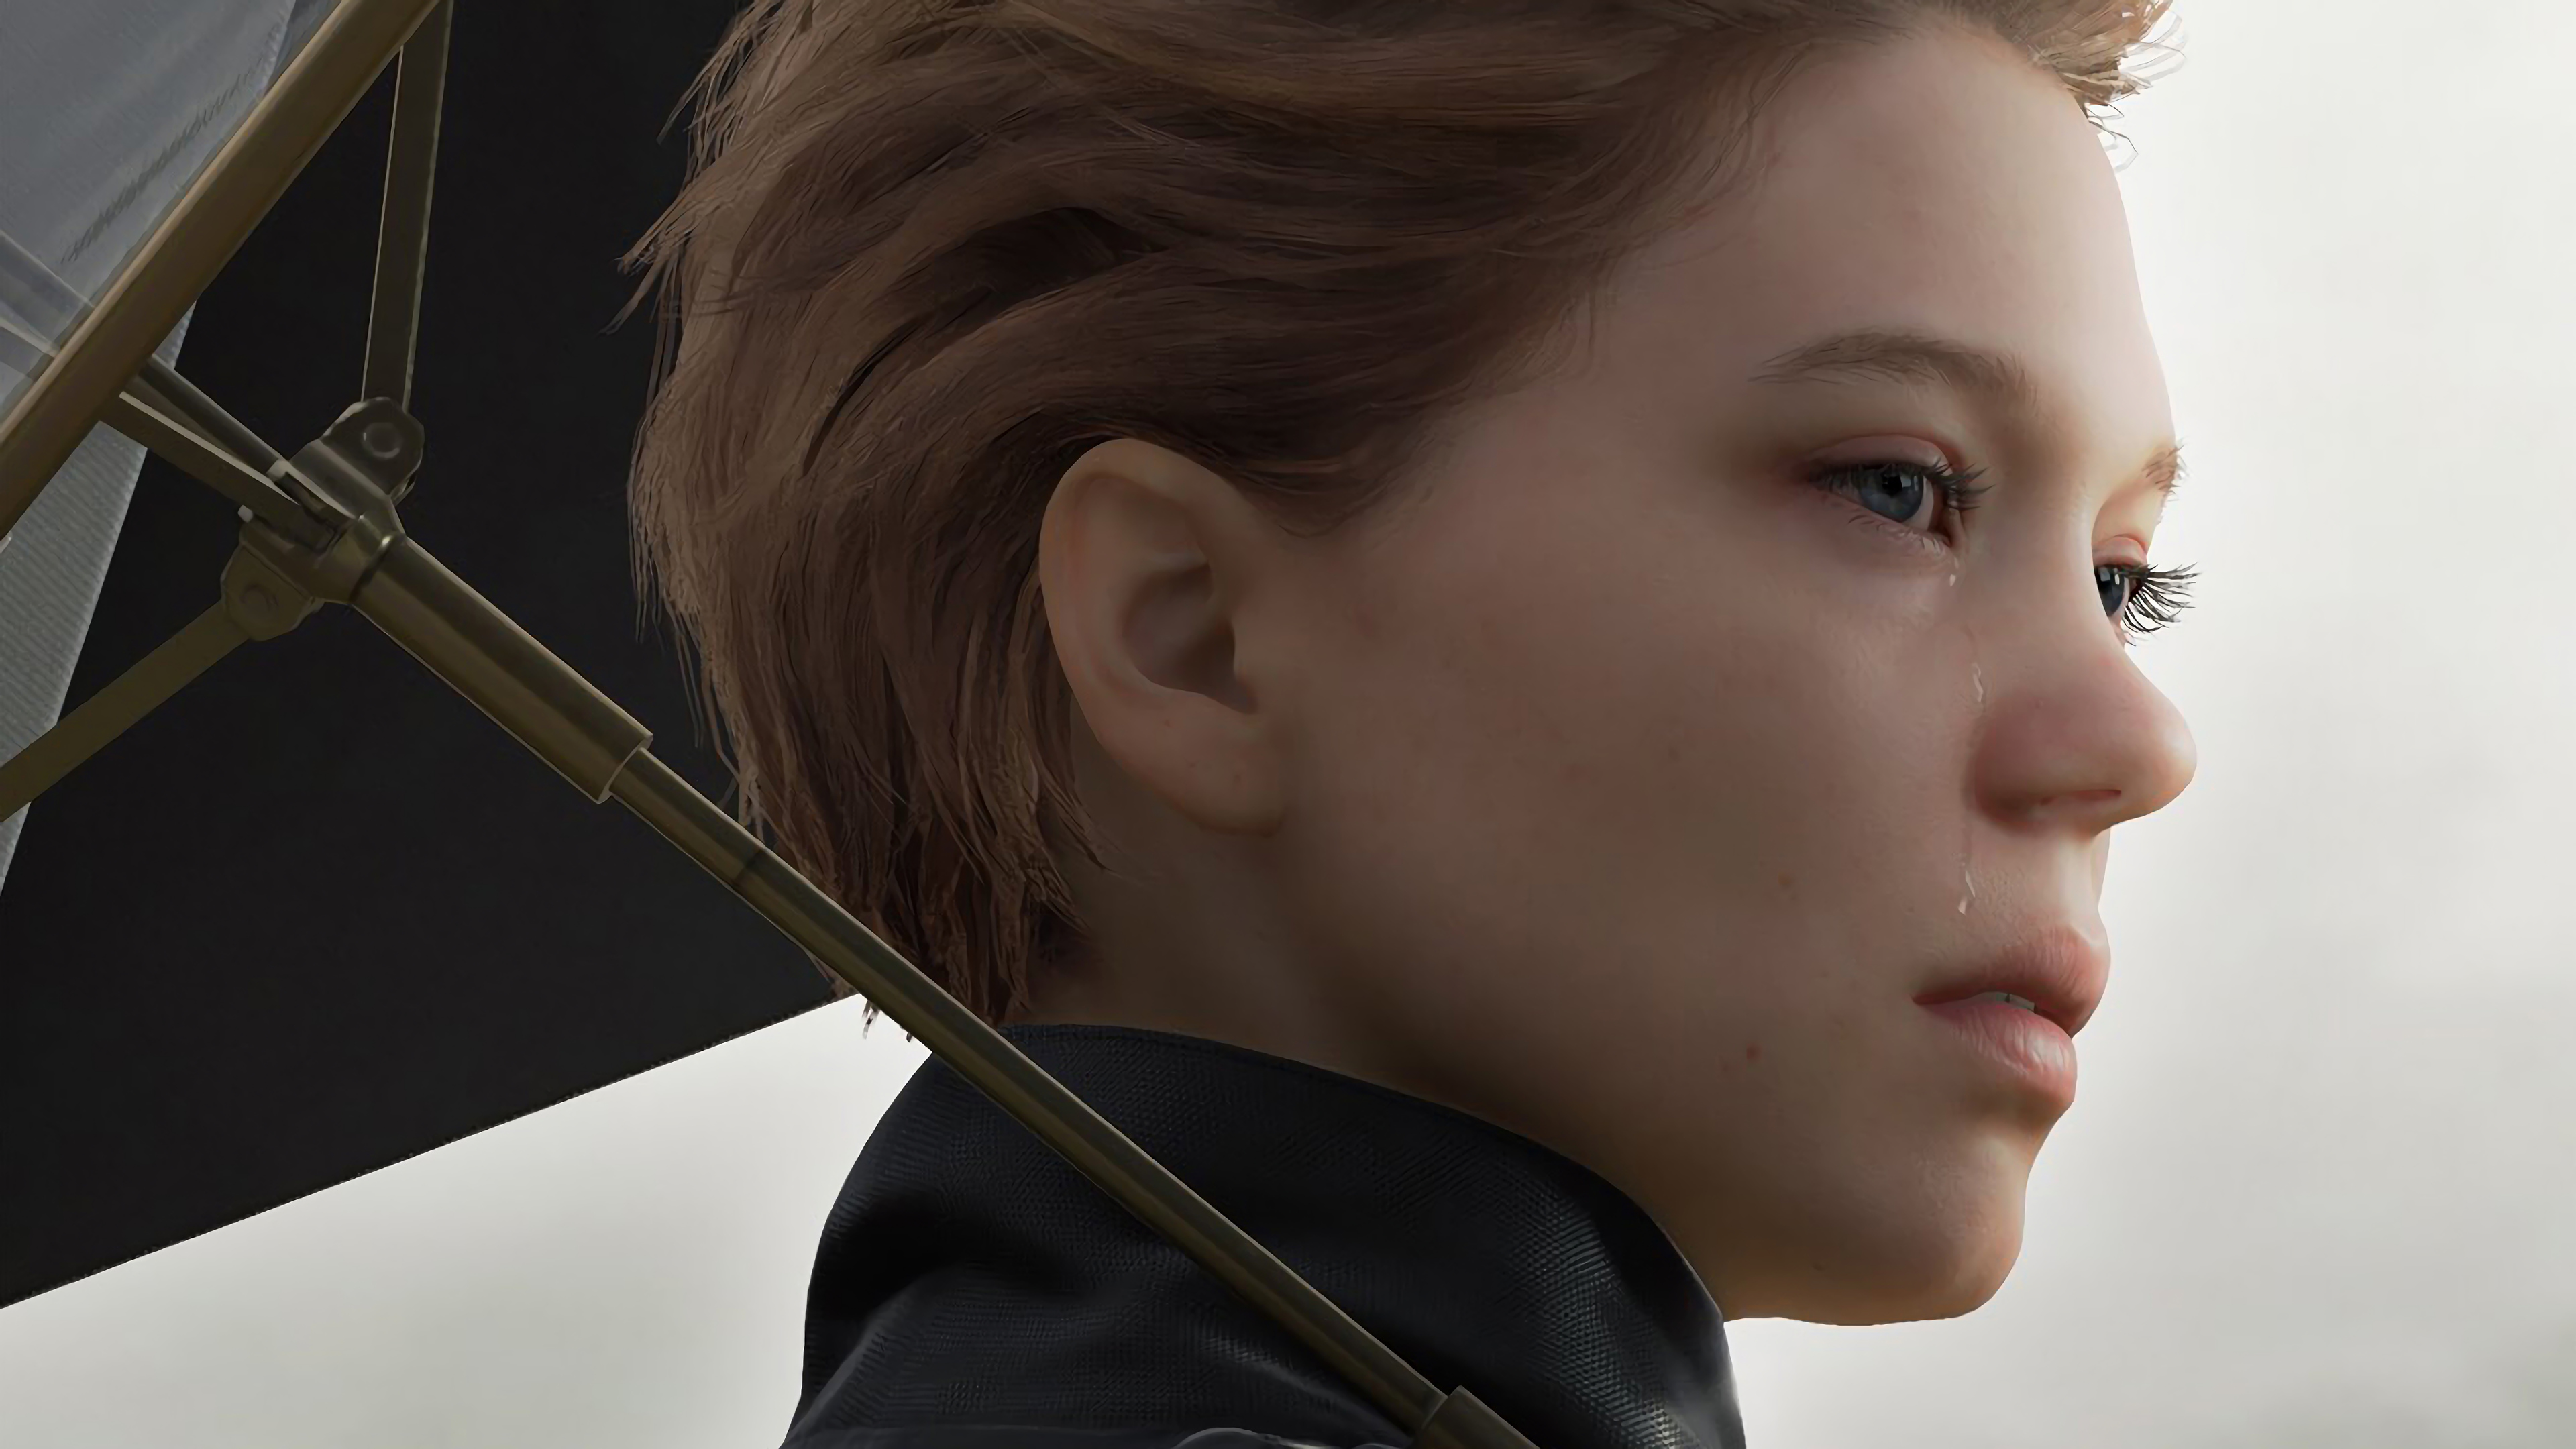 Death Stranding Fragile Lea Seydoux 4k Wallpaper 15 Hit square on the prompt to be taken to the fast travel. death stranding fragile lea seydoux 4k